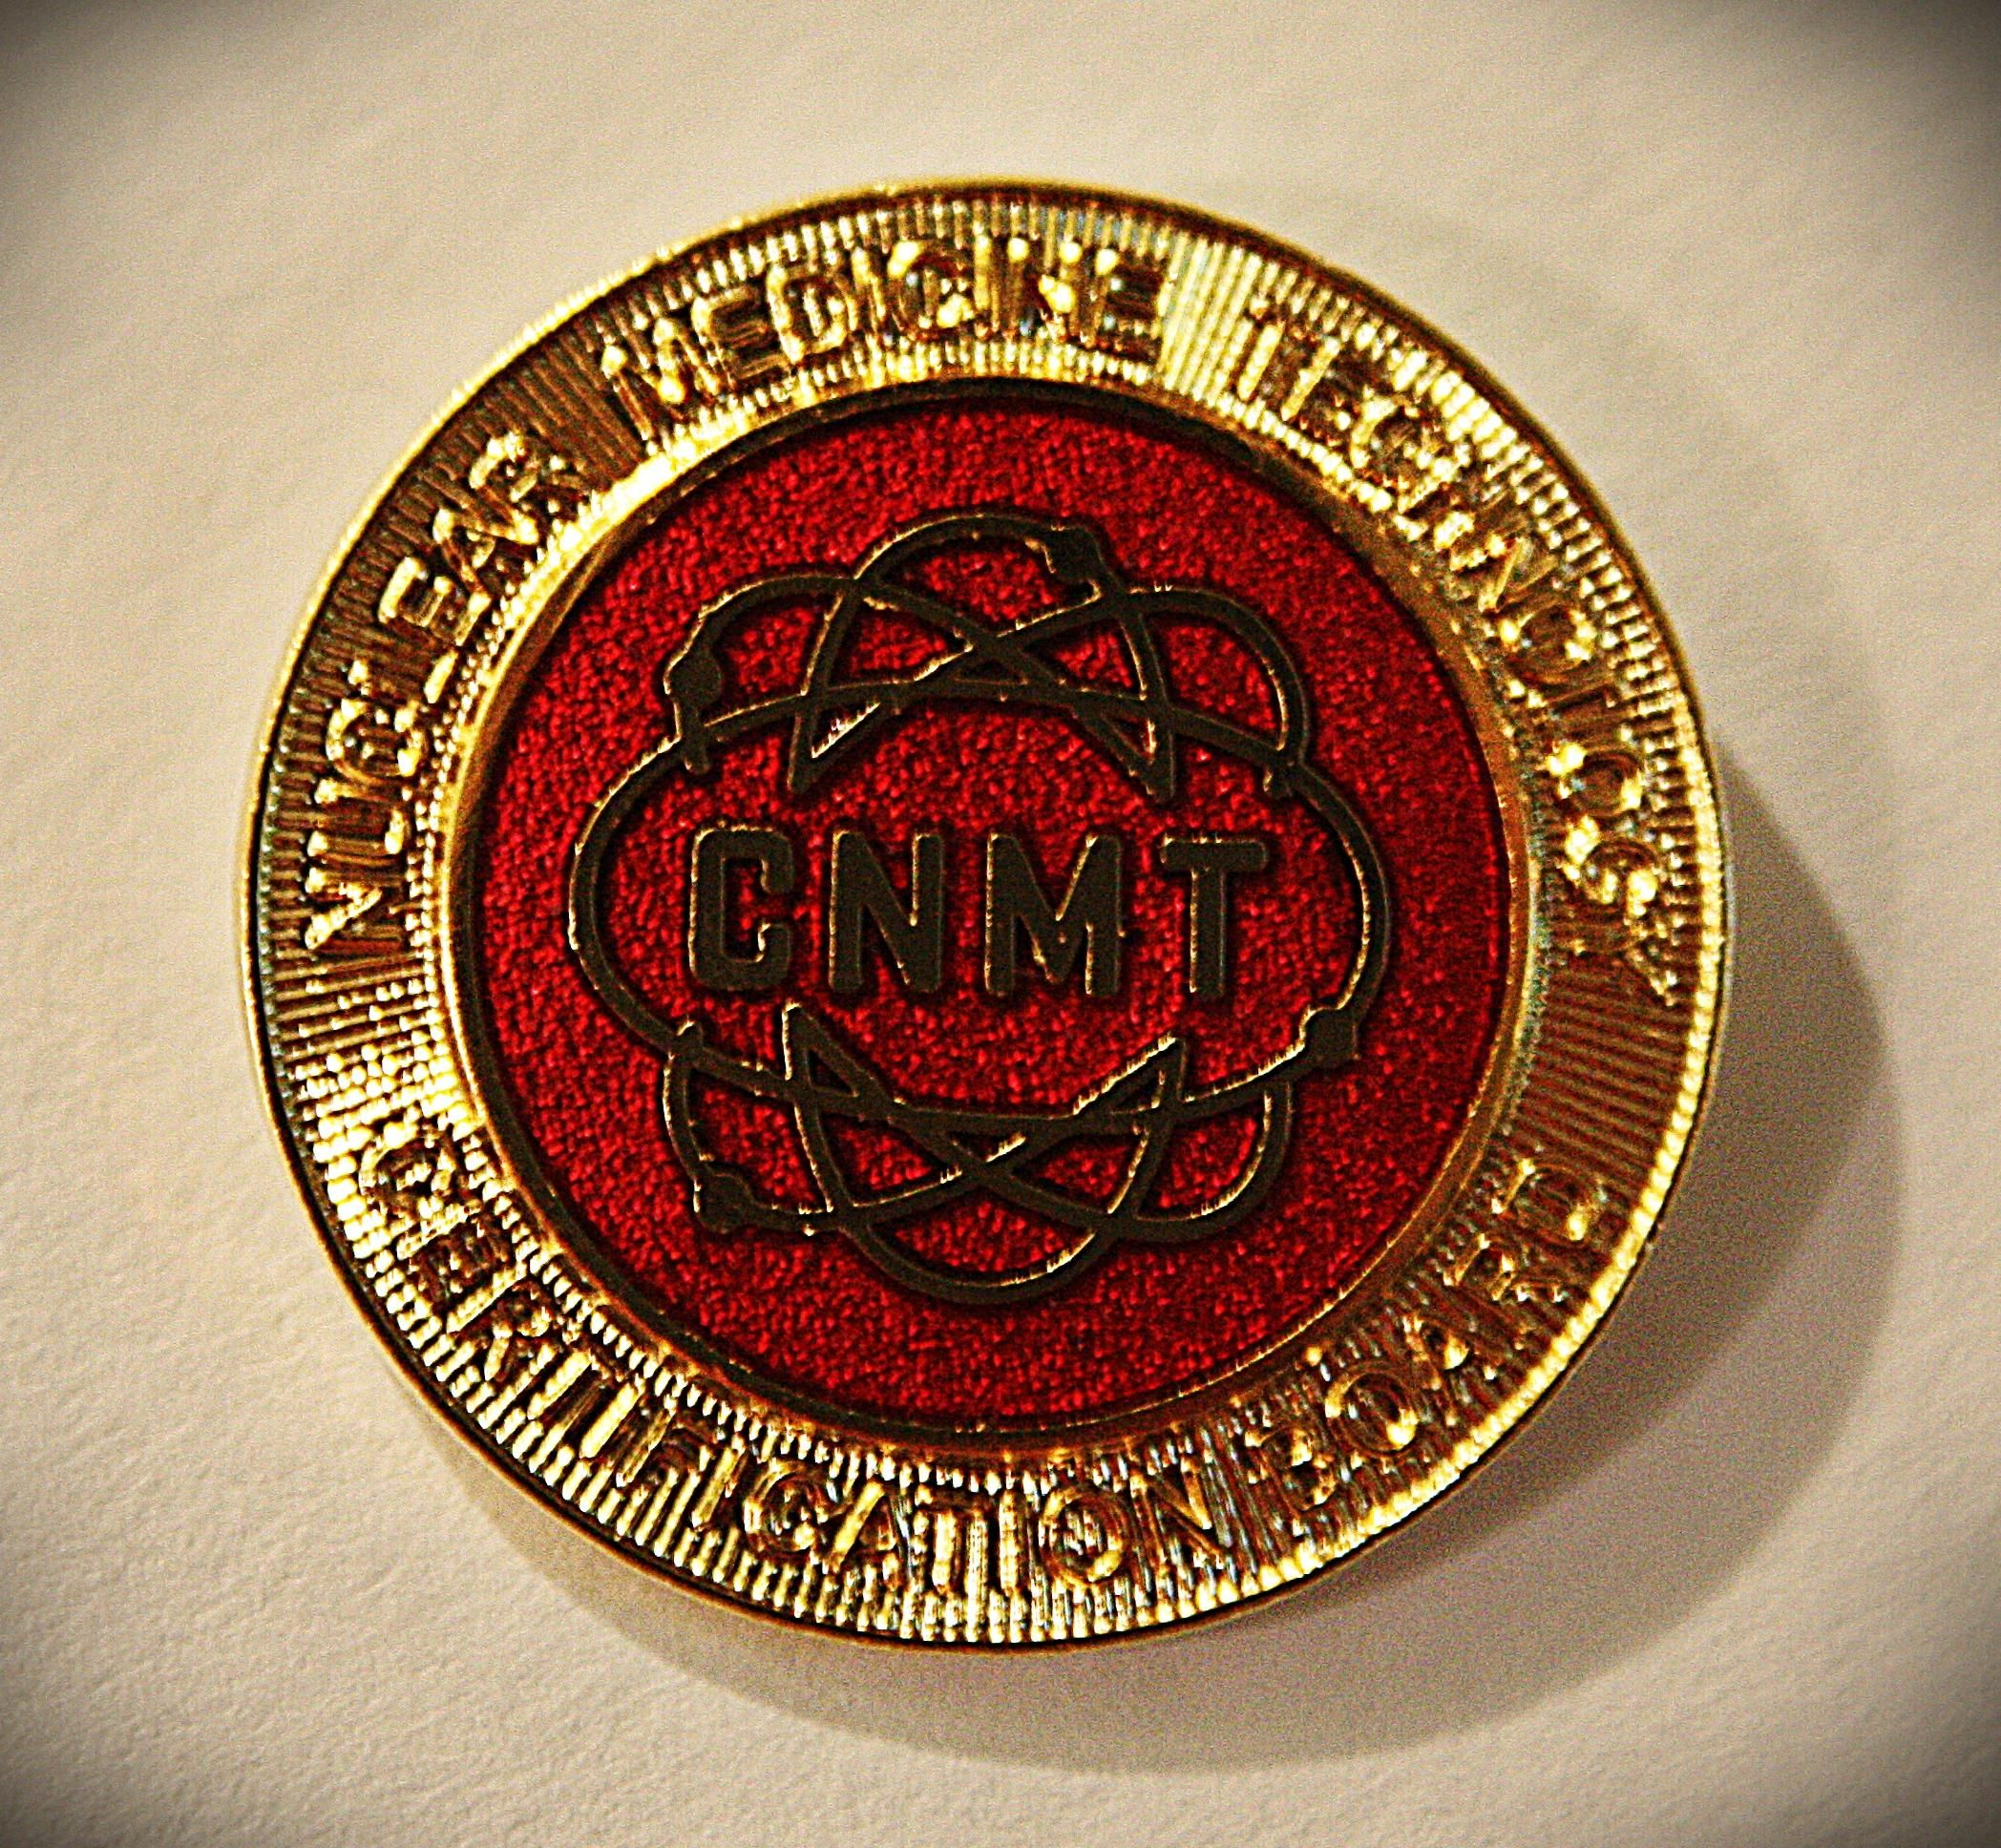 Cnmt Gold Pin Certified Nuclear Medicine Technologist Pin Included